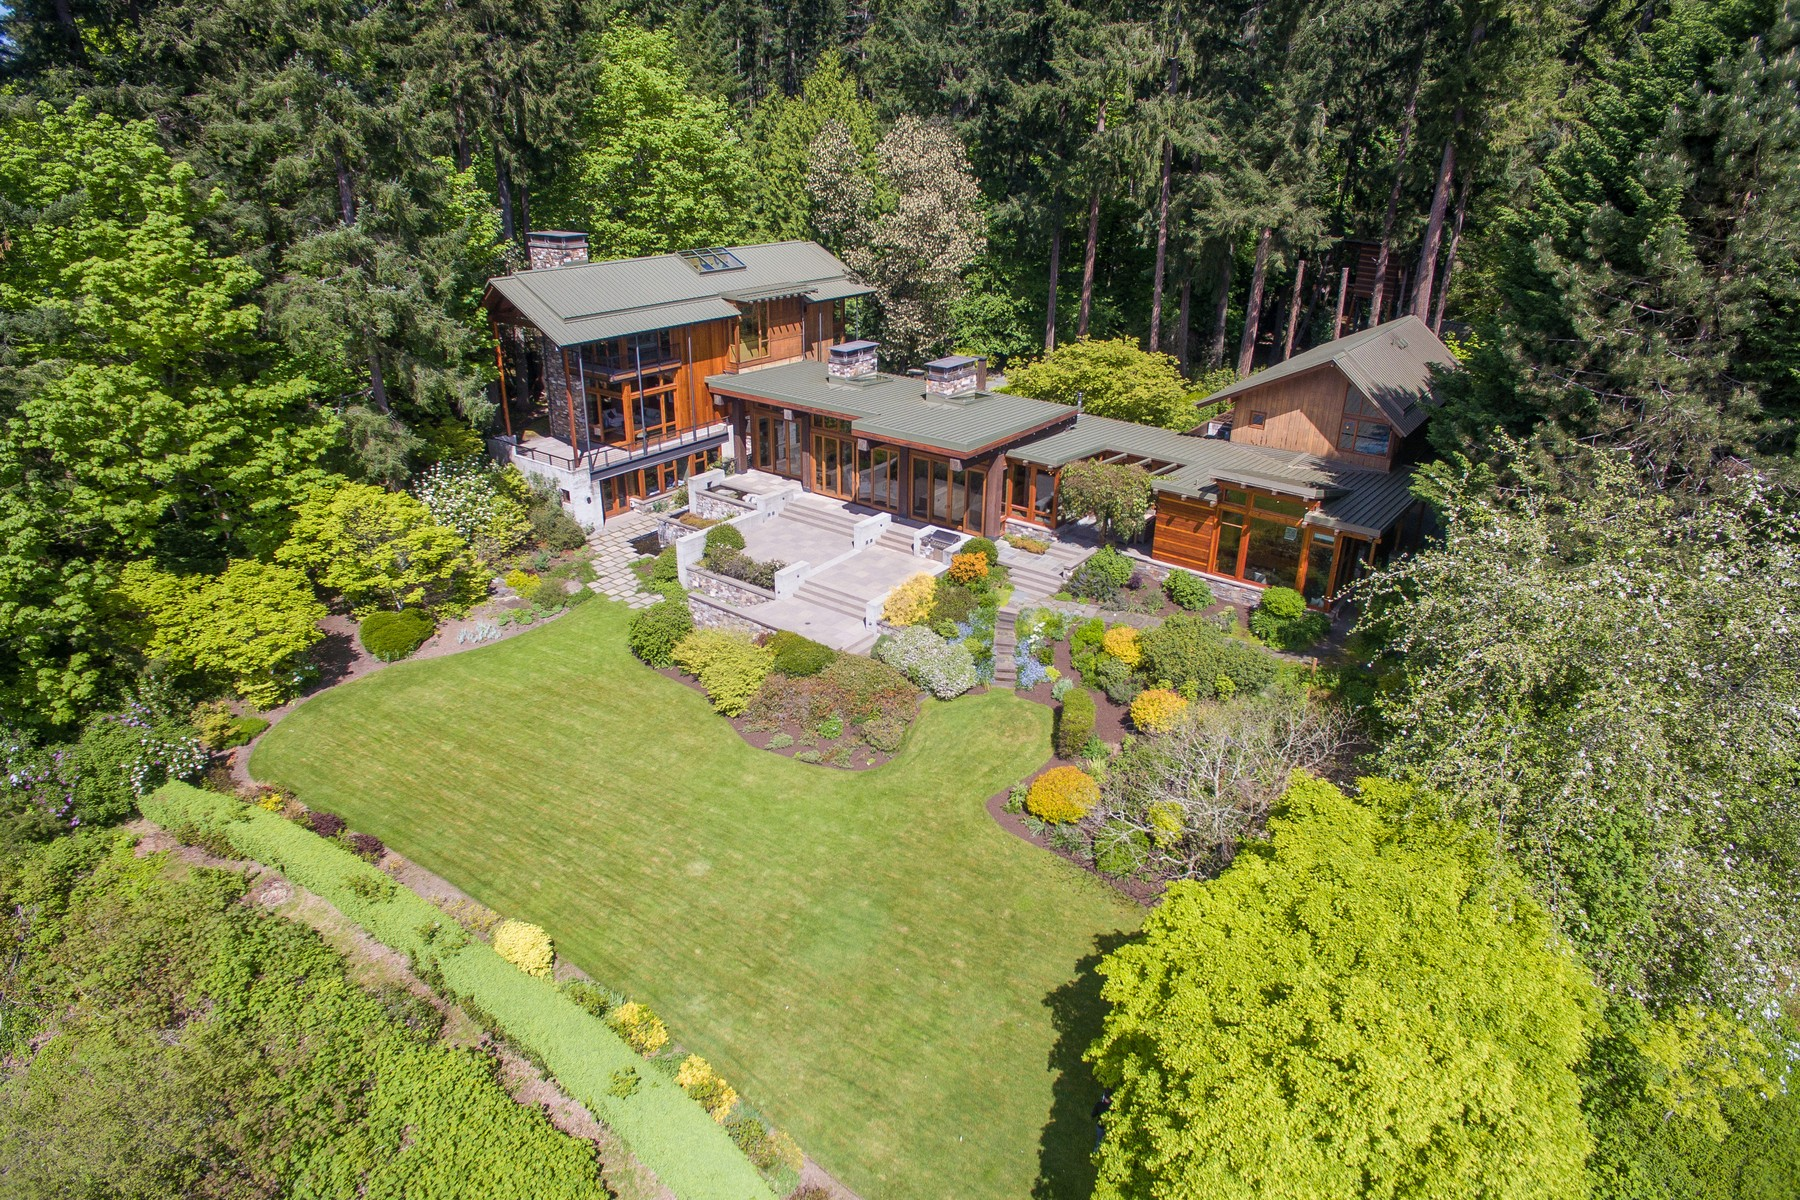 House for Sale at Picturesque waterfront estate RES5/3 Undisclosed Bainbridge Island, Washington 98110 United States